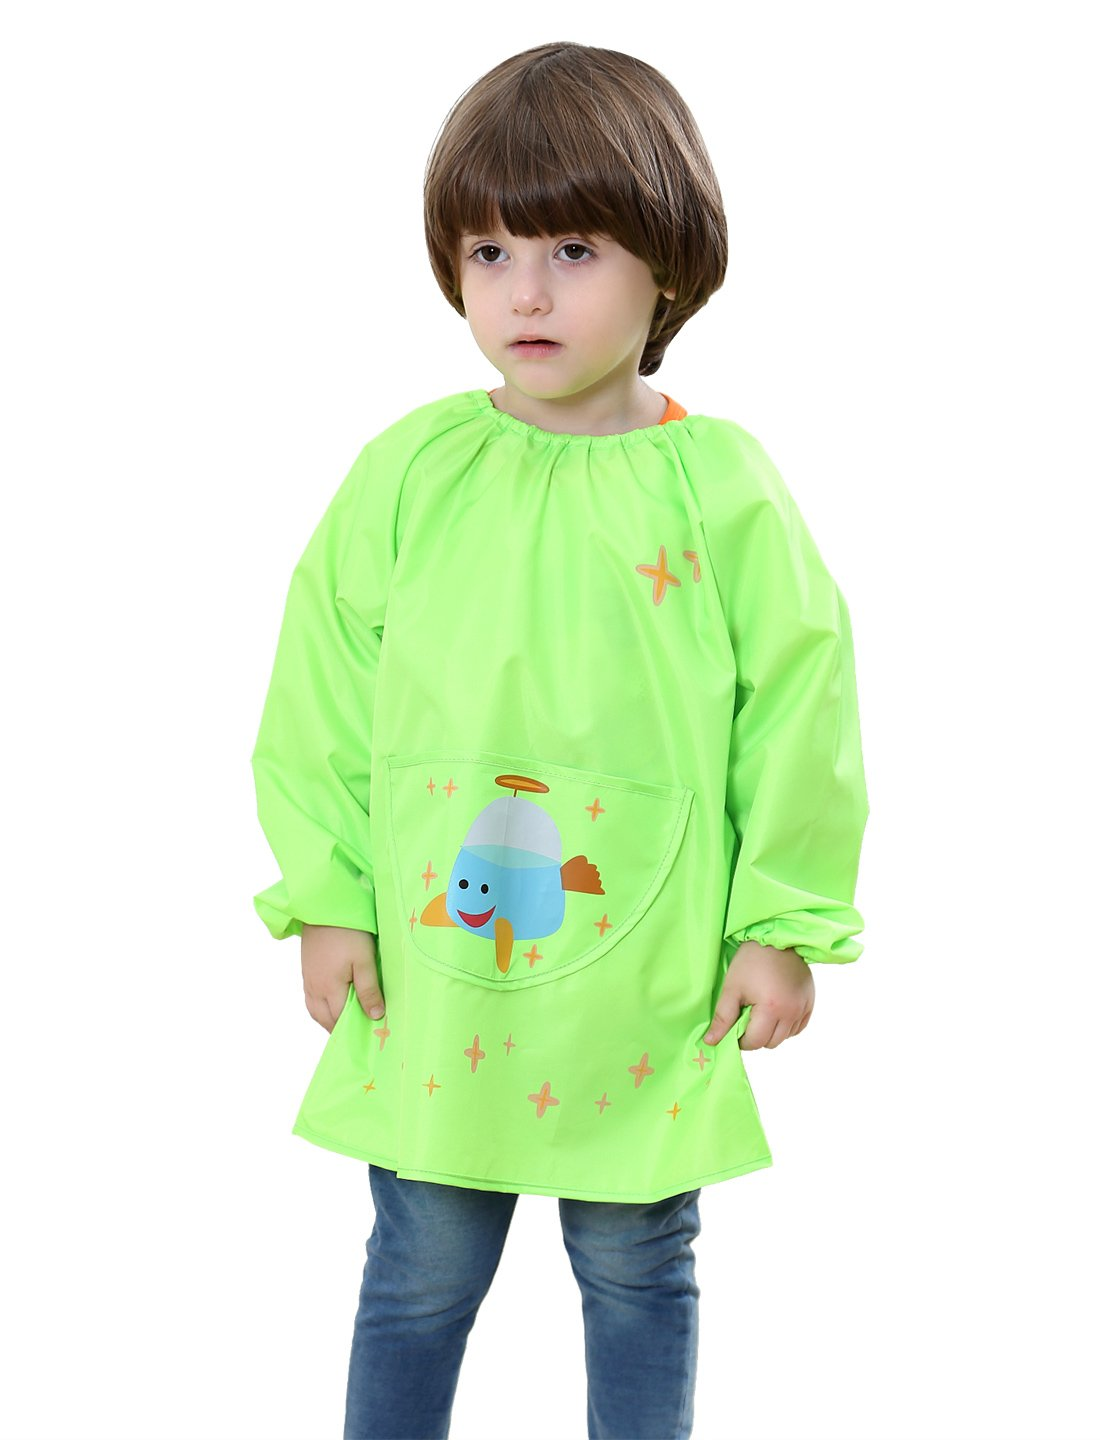 Kids Multifunctional Painting Smock Cute Aircraft Printing Childrens Polyester Waterproof Pullover Sleeve Bib Drawing Apron Green 2-4 T